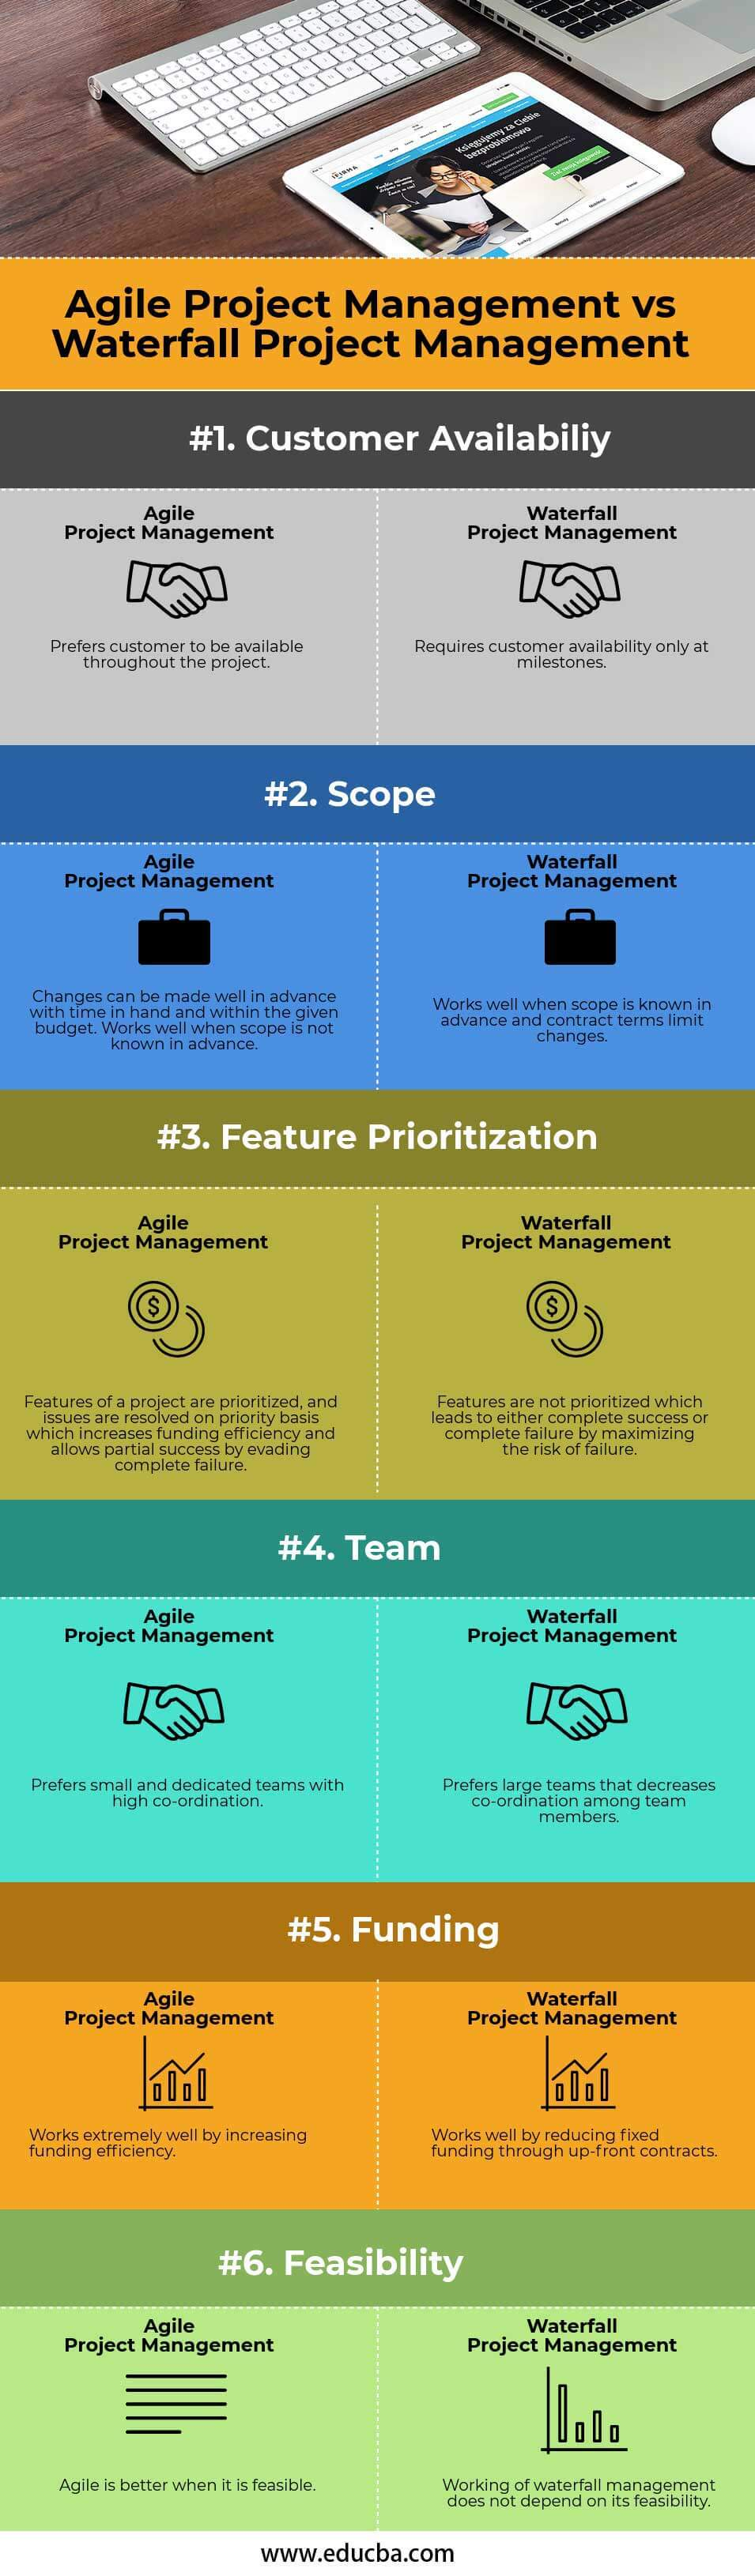 Agile Project Management vs Waterfall Project Management info